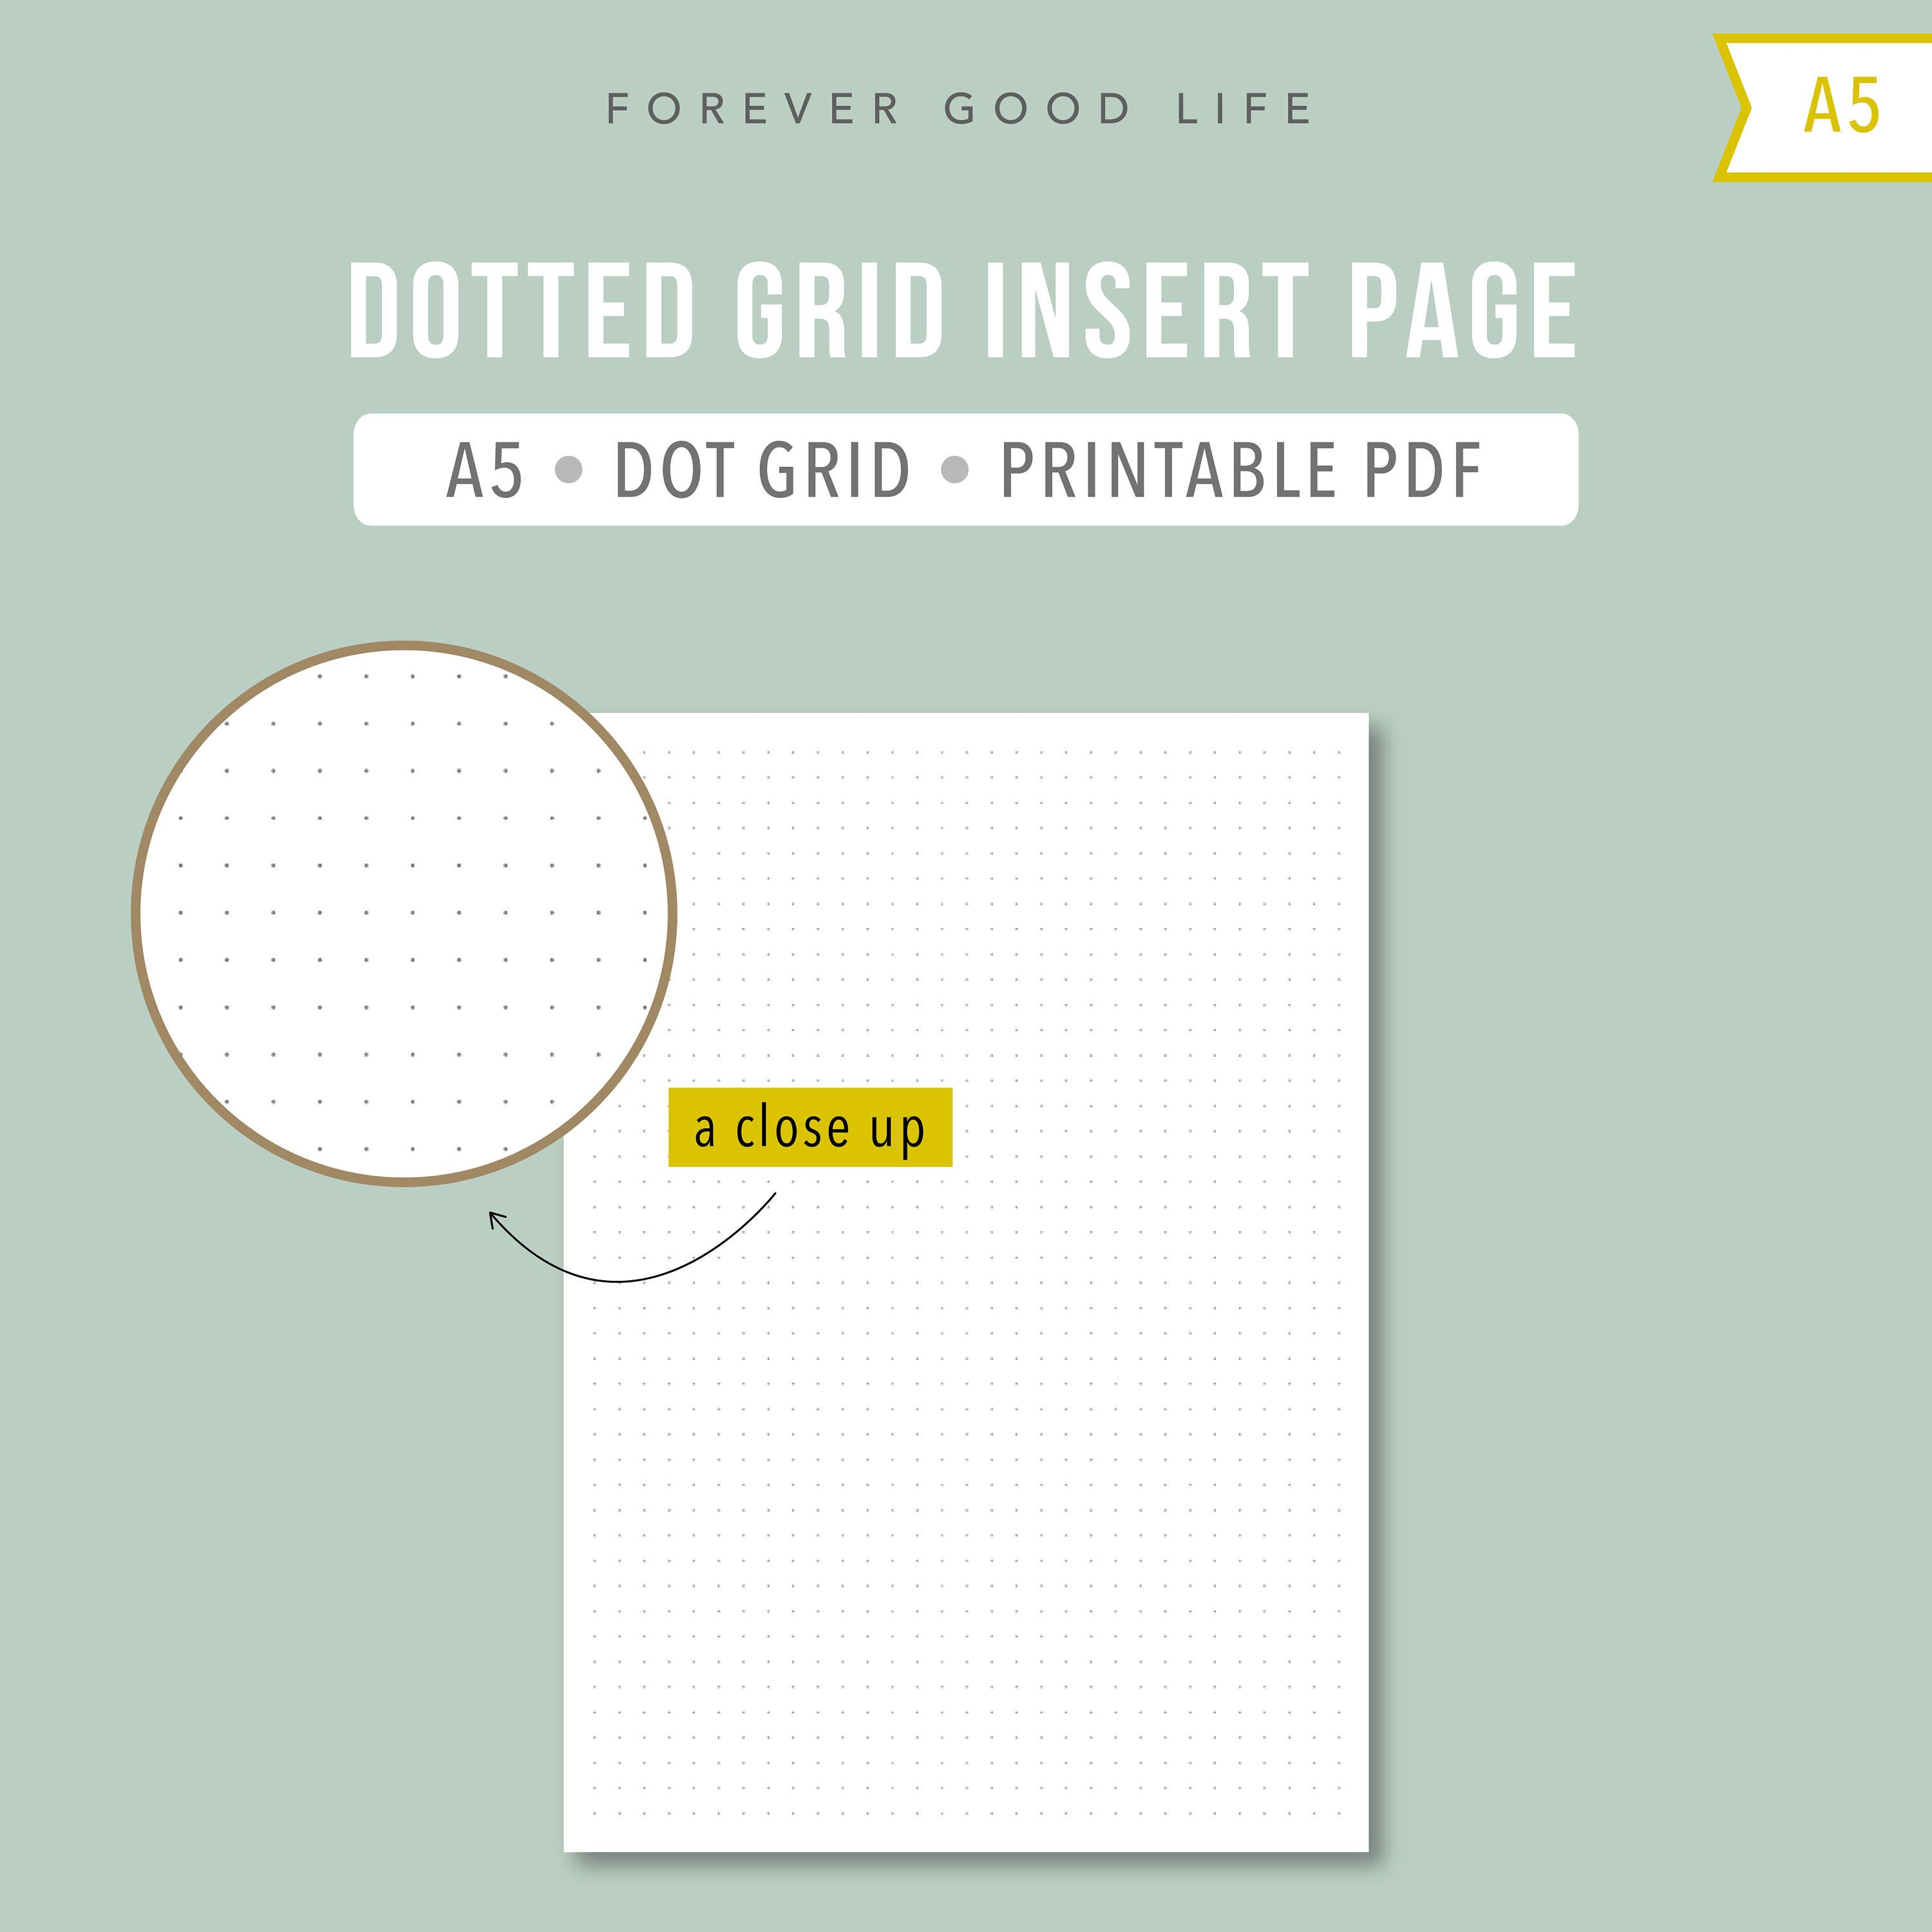 This is an image of Divine Dot Grid Printable